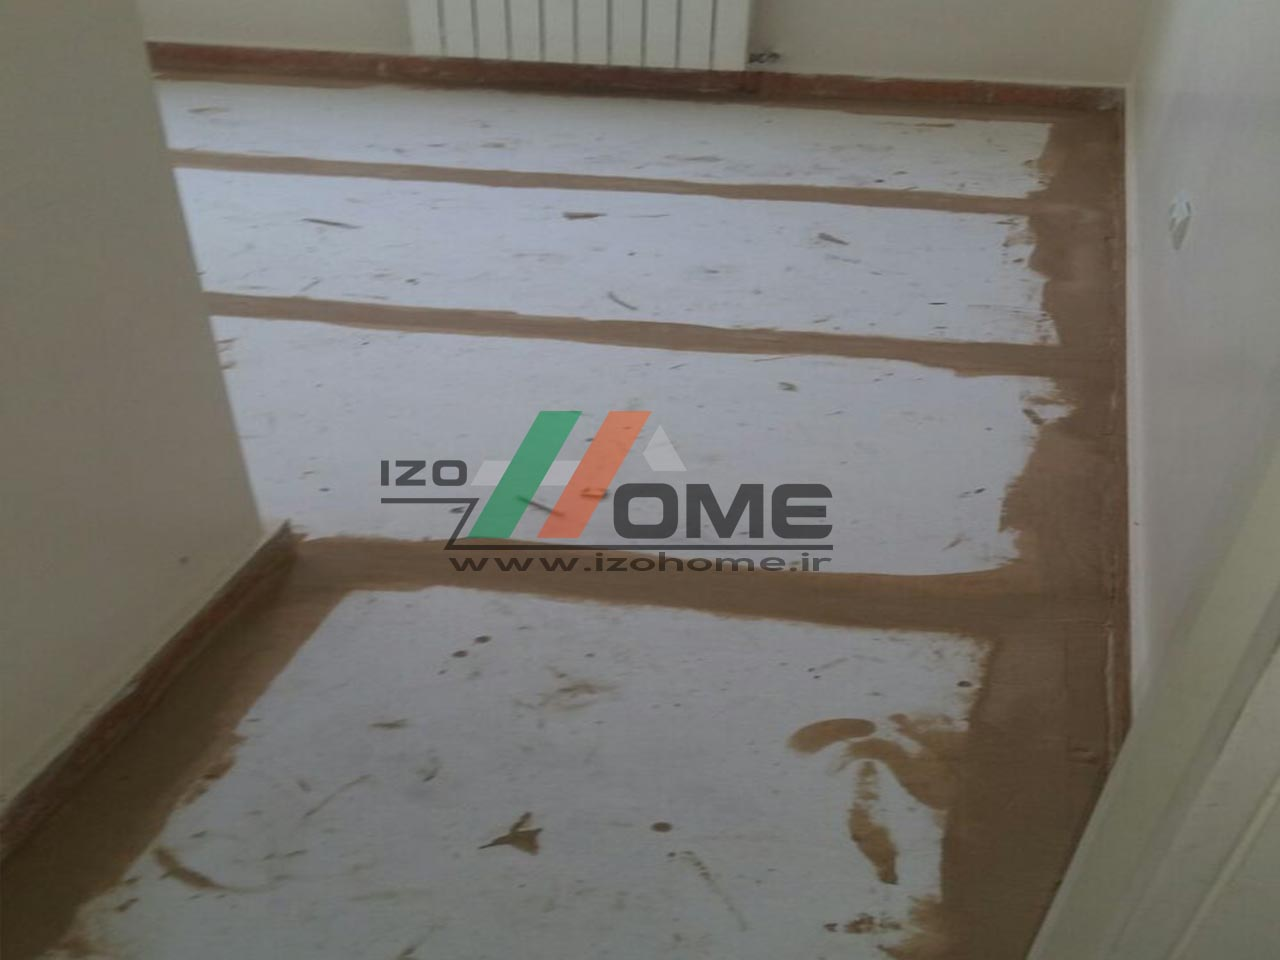 izohome100 - Sound insulation for the floor